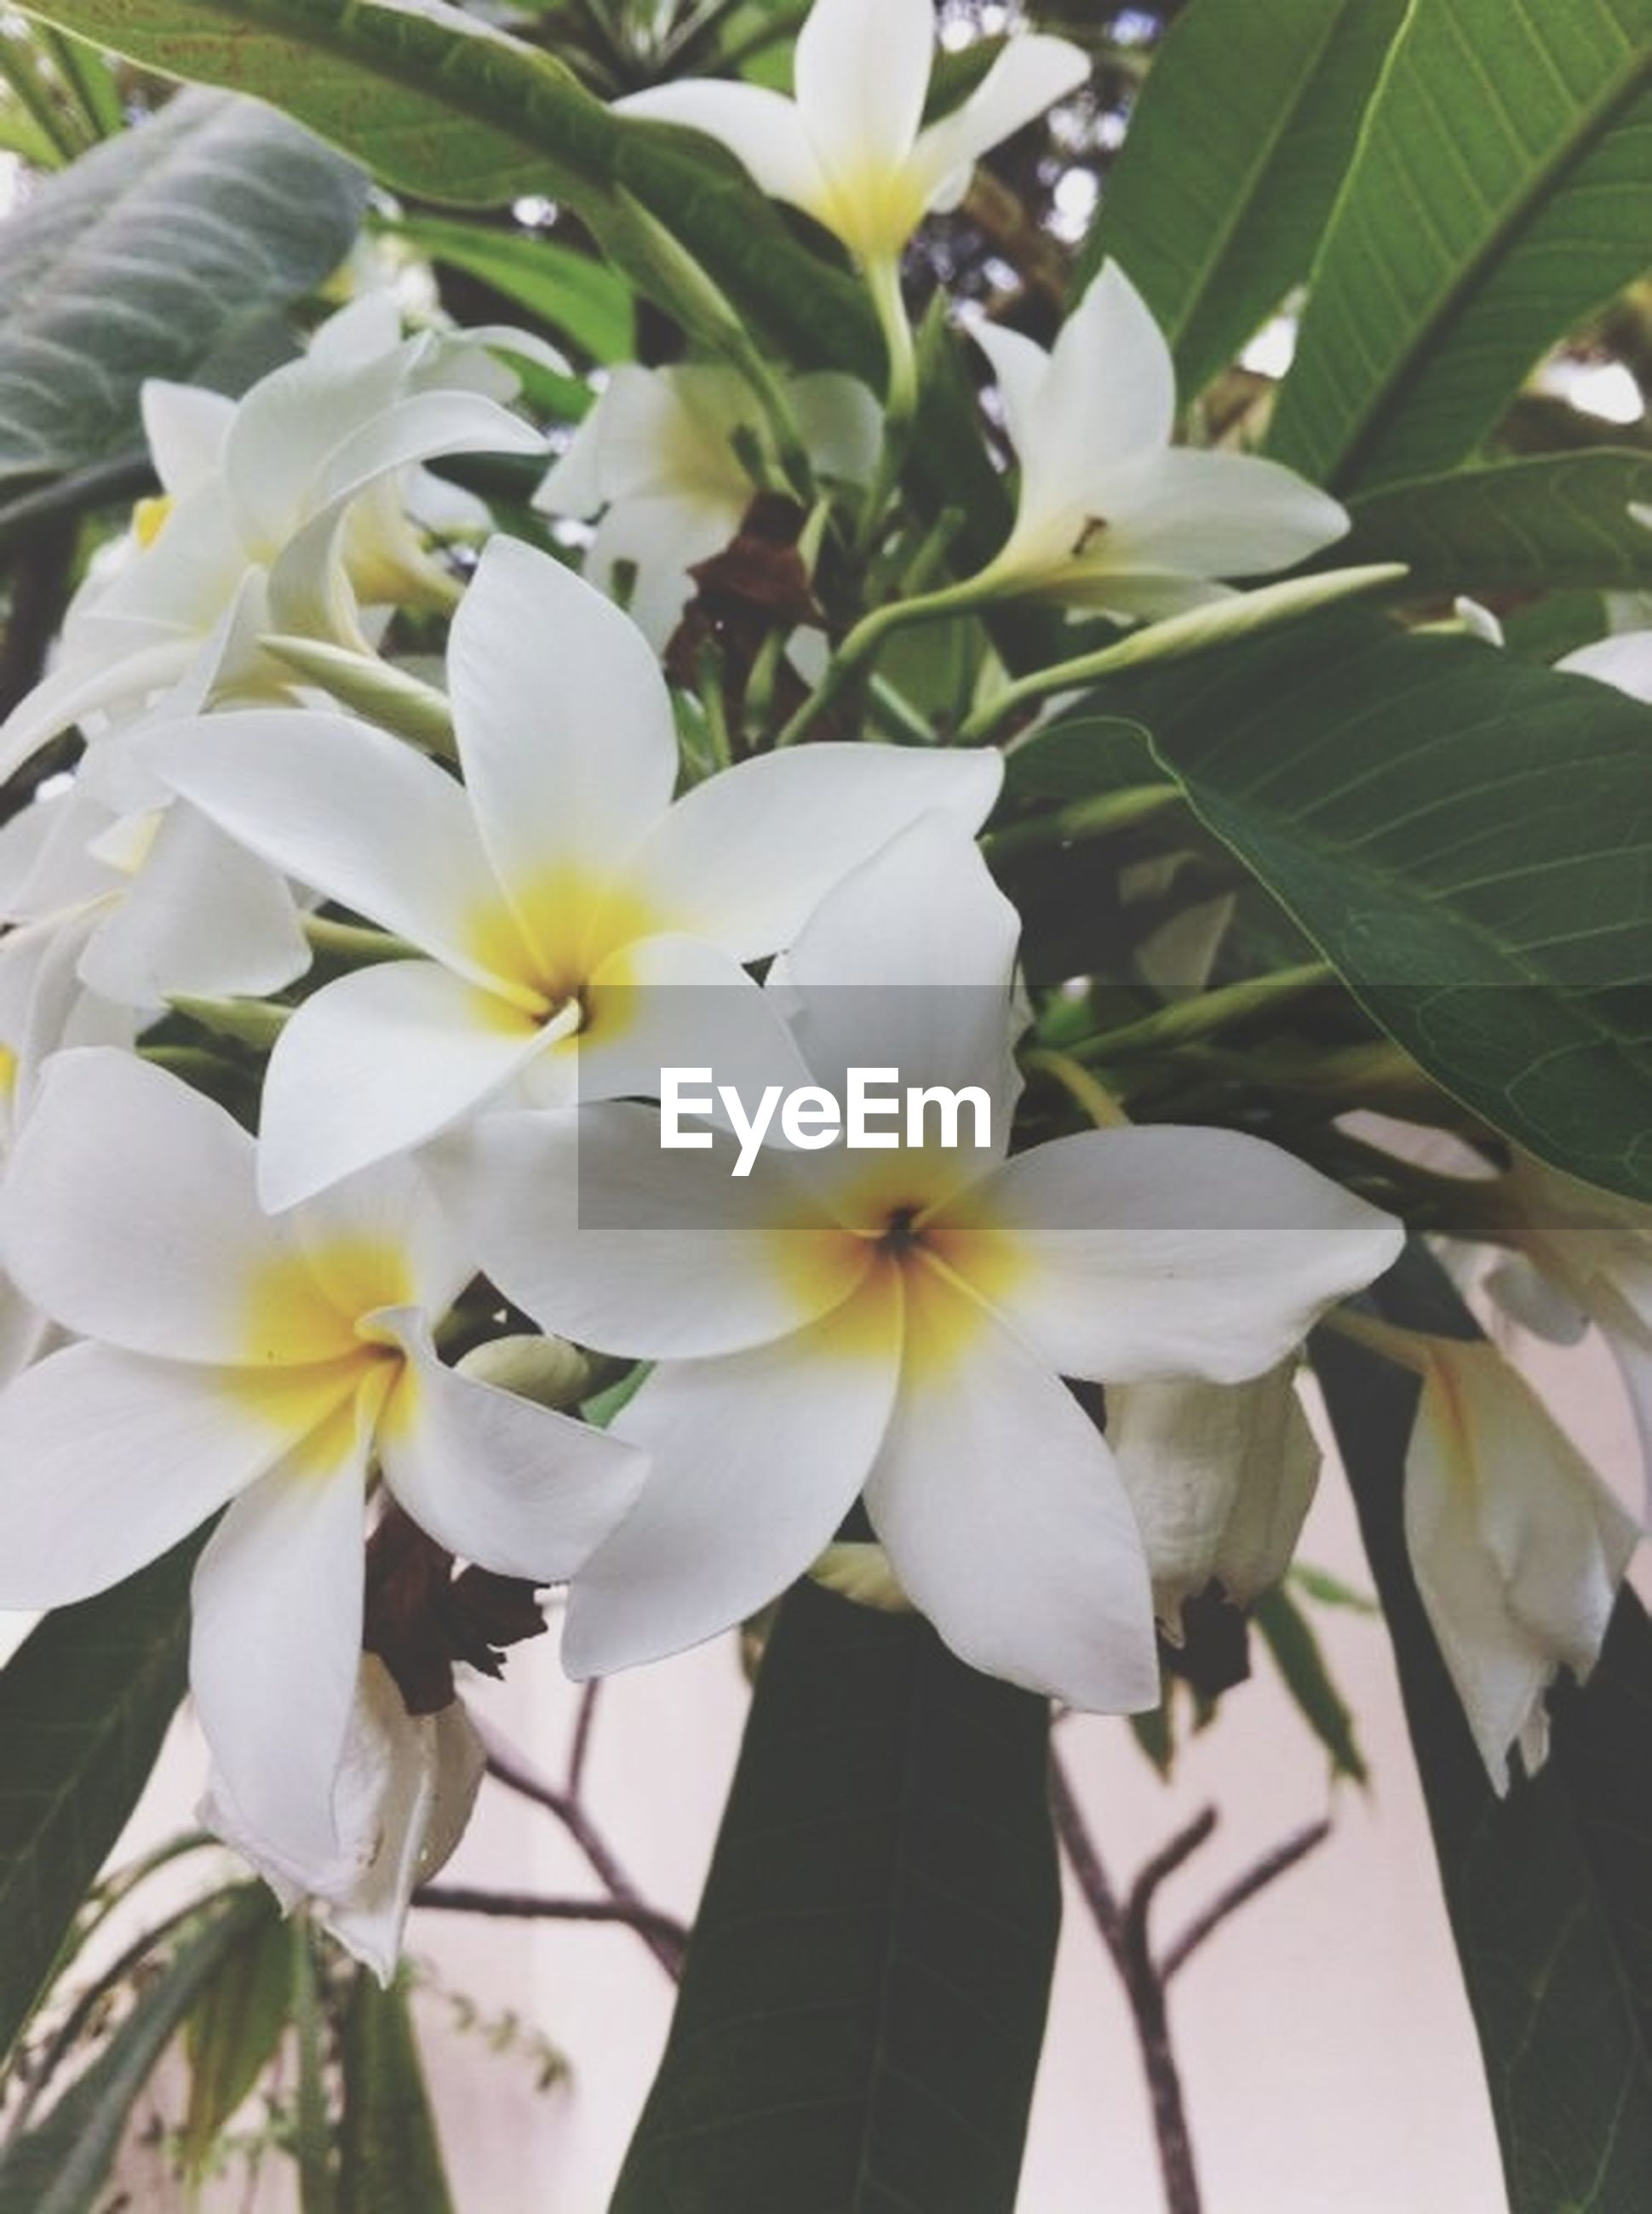 flower, white color, freshness, growth, petal, fragility, close-up, beauty in nature, nature, leaf, flower head, blooming, white, focus on foreground, plant, tree, day, blossom, branch, low angle view